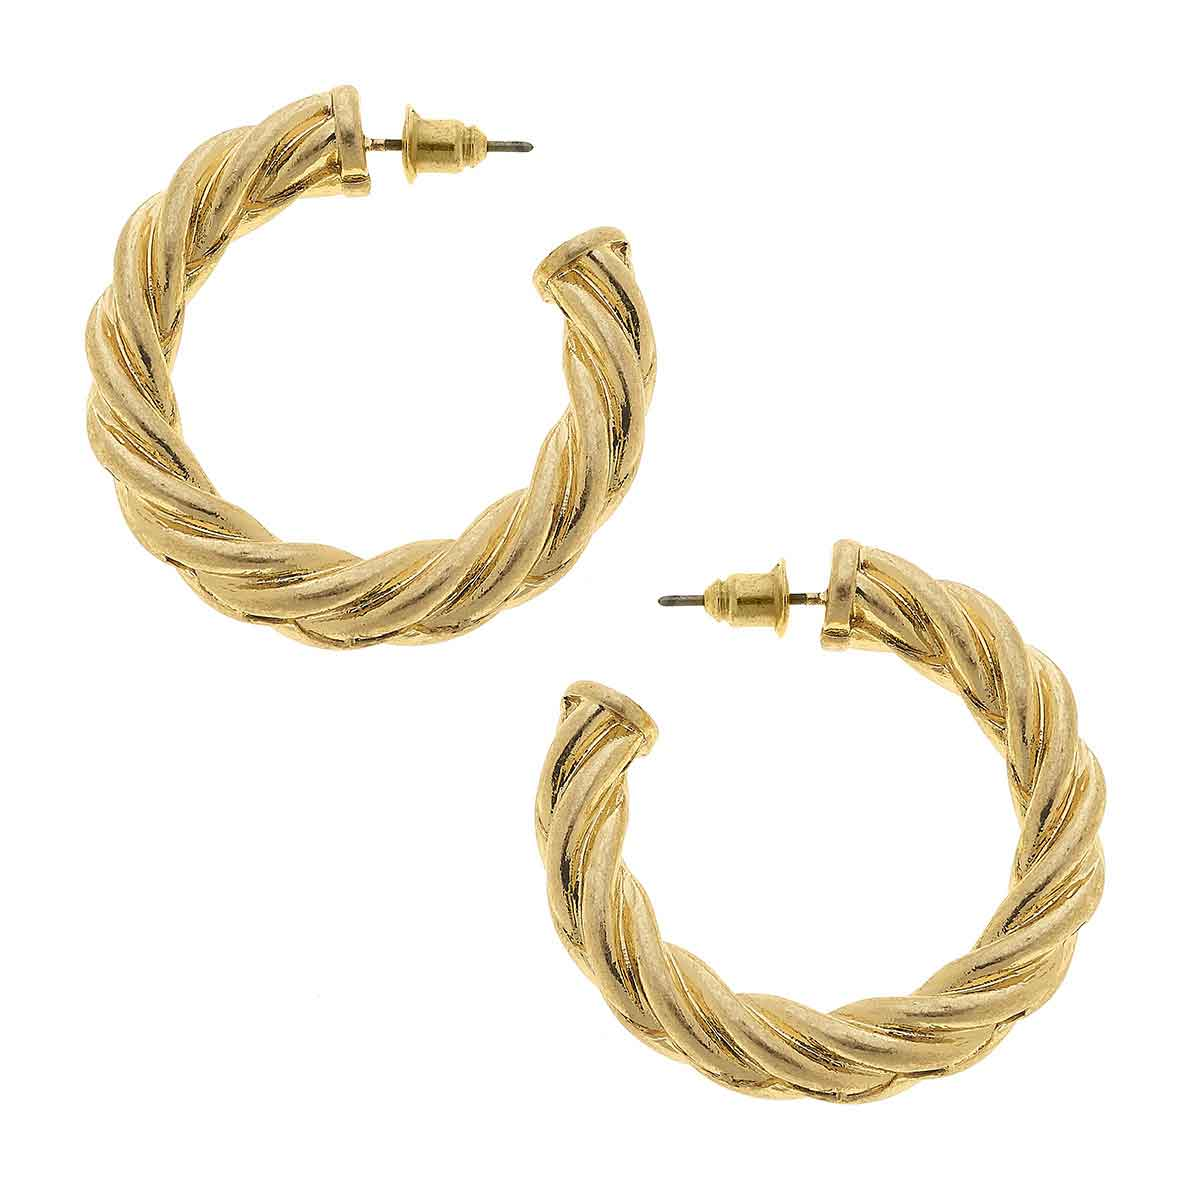 Claire Twisted Rope Hoop Earrings in Worn Gold